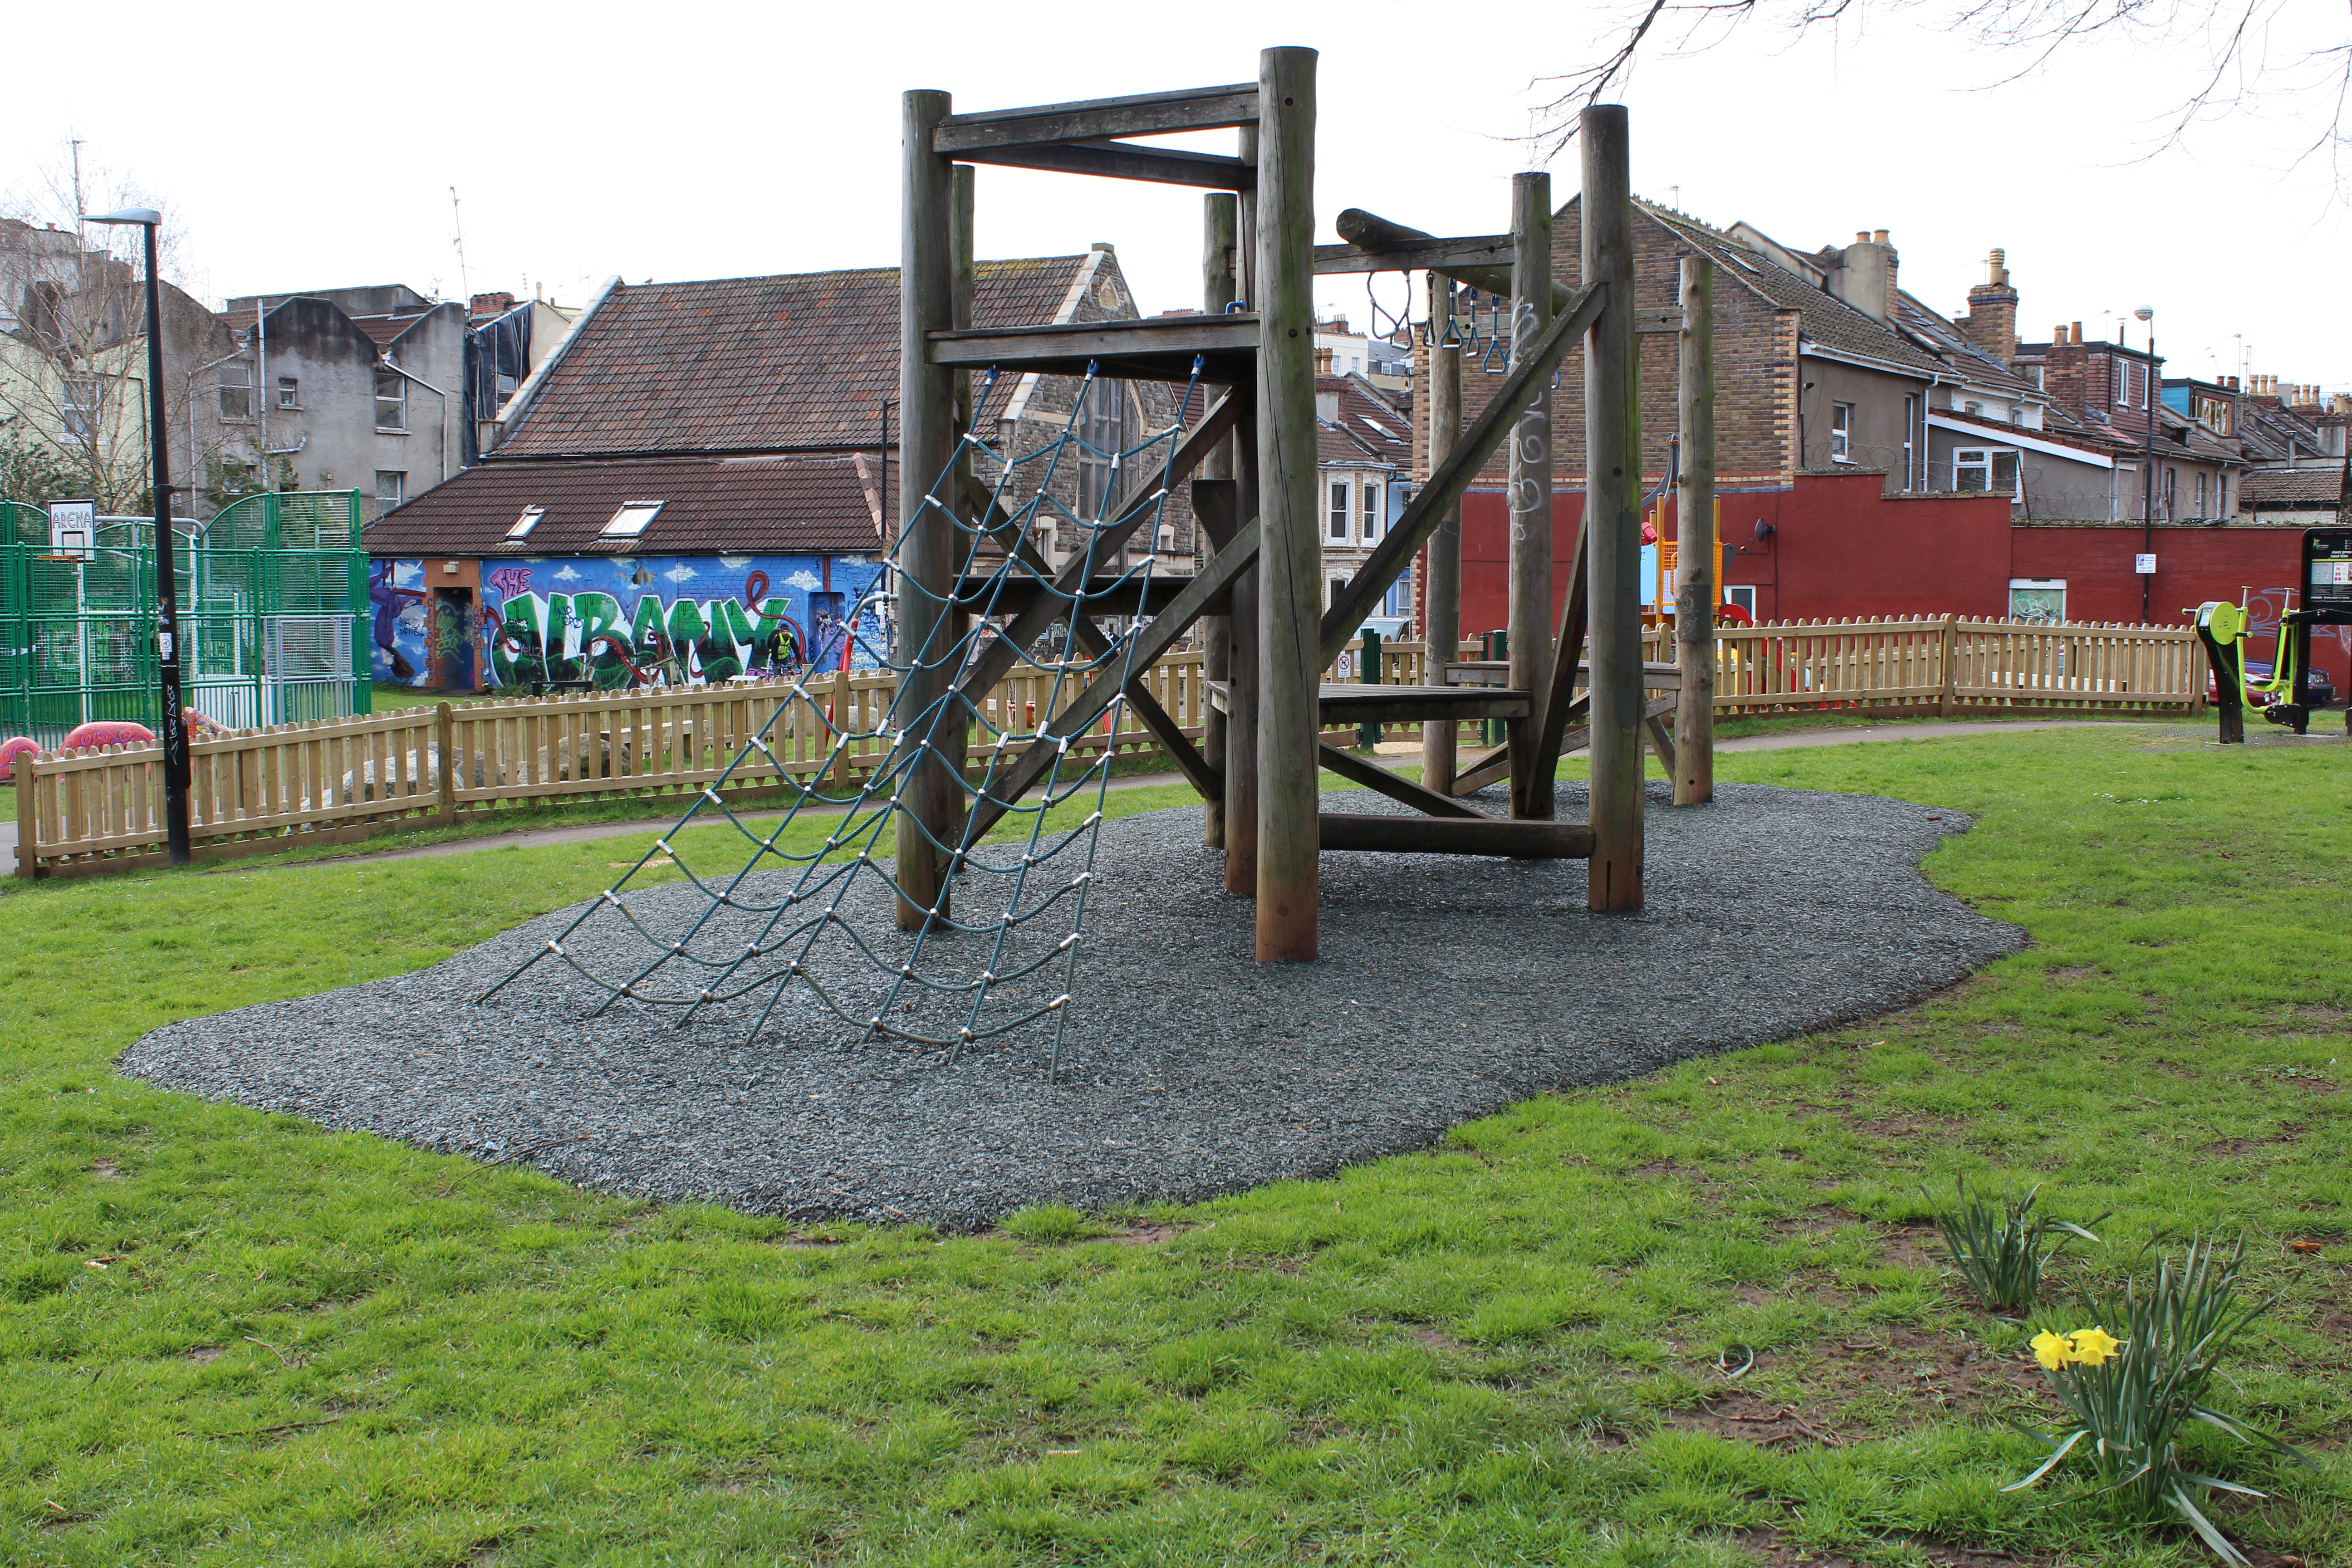 new surfacing for existing play equipment